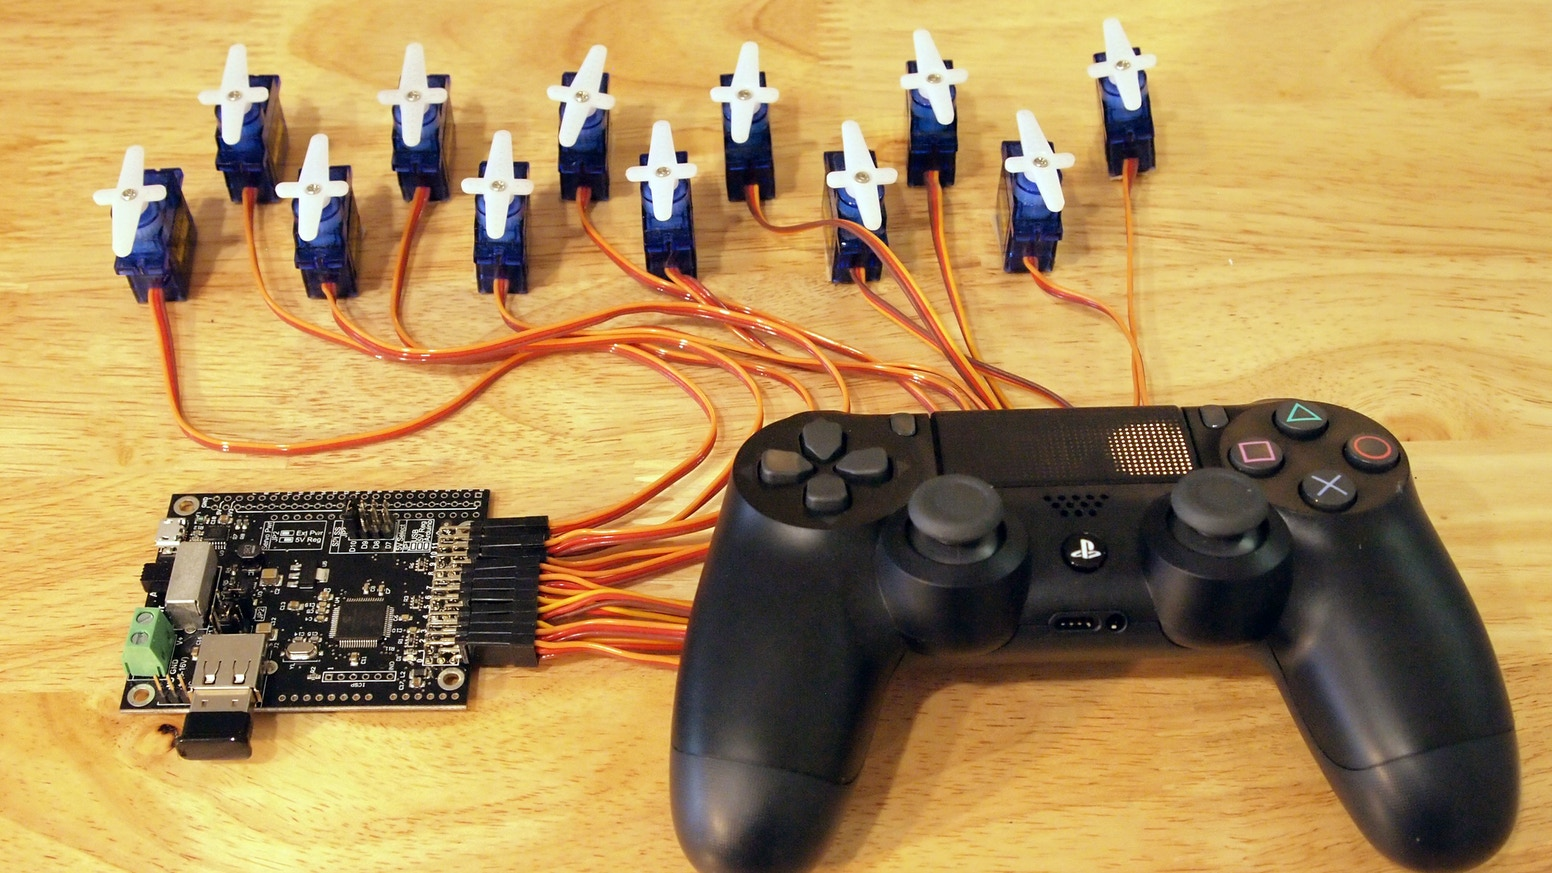 Servoshock 2: Servo Control with the PS4 Controller by Cross Product